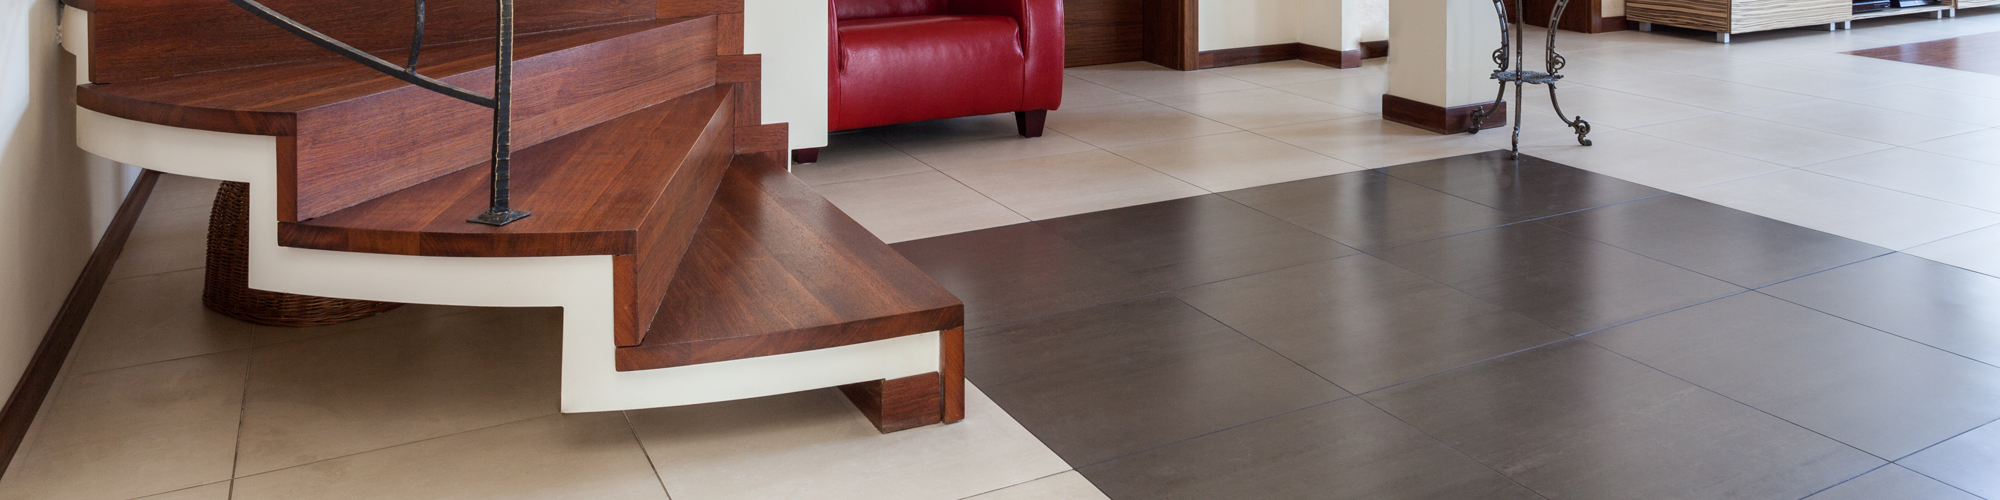 Tiles On Stairs | Flooring Services in Fort Worth, TX